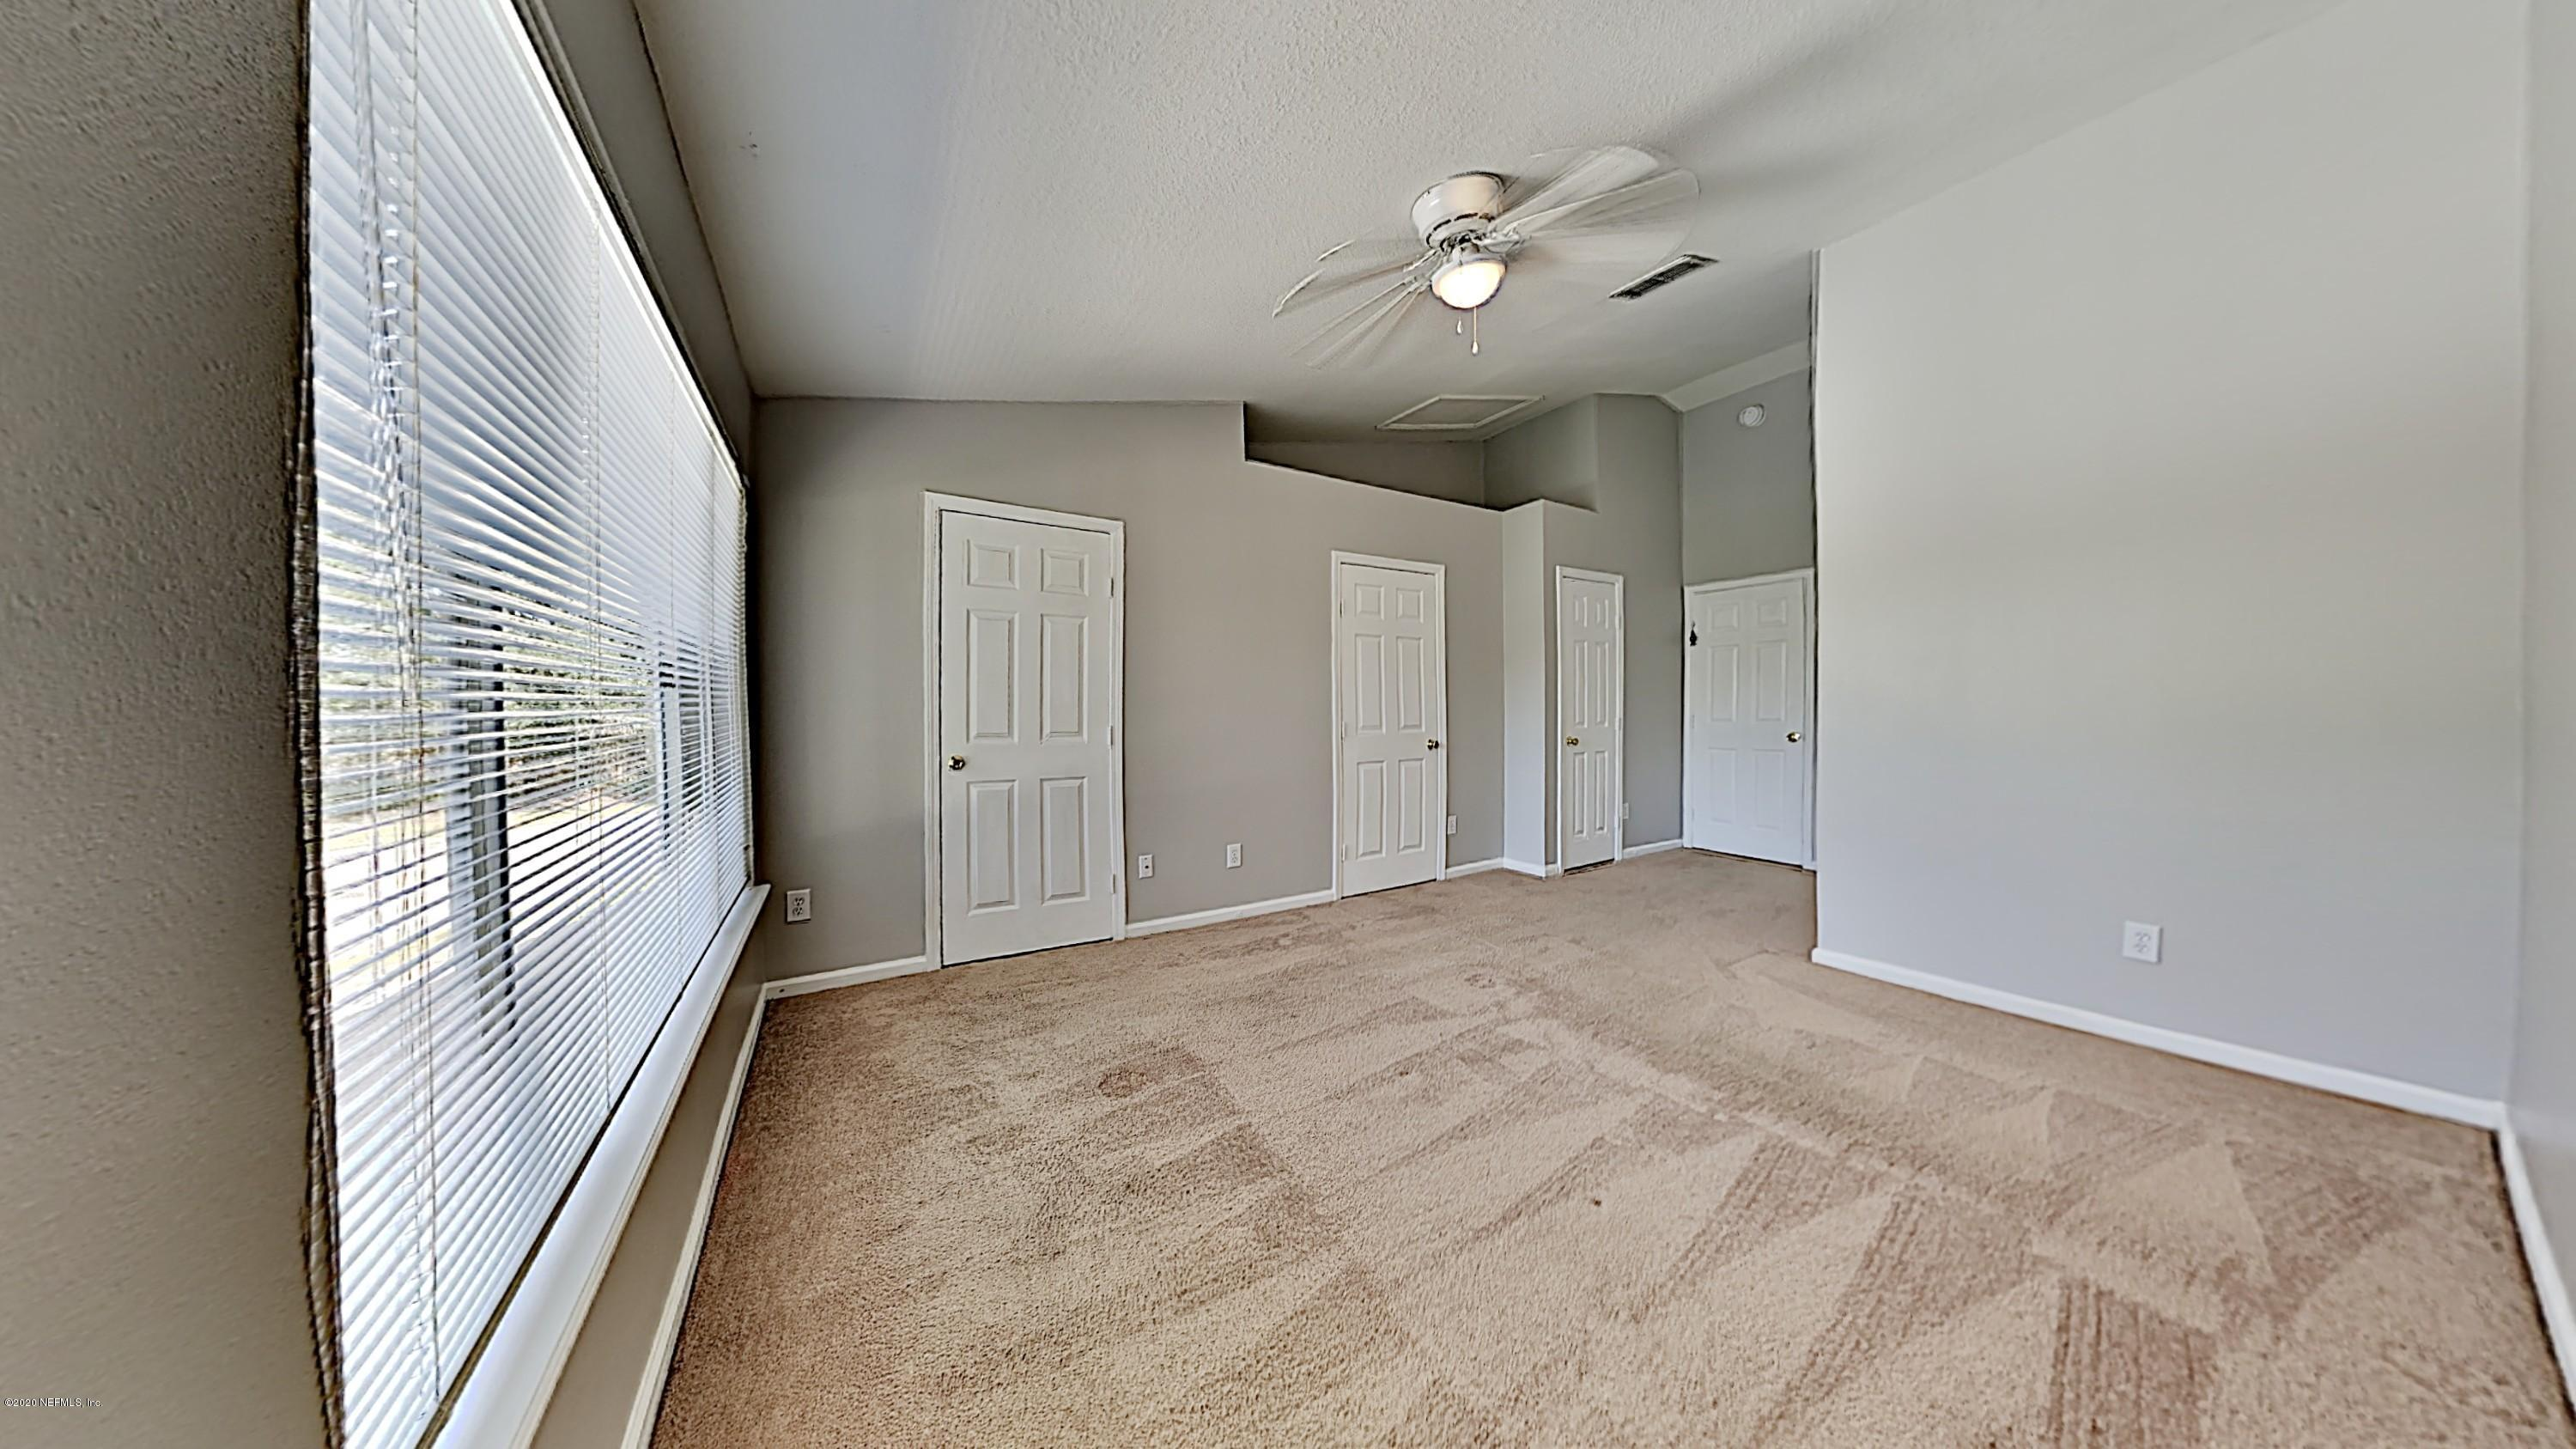 8230 DAMES POINT CROSSING, JACKSONVILLE, FLORIDA 32277, 2 Bedrooms Bedrooms, ,1 BathroomBathrooms,Residential,For sale,DAMES POINT CROSSING,1082058